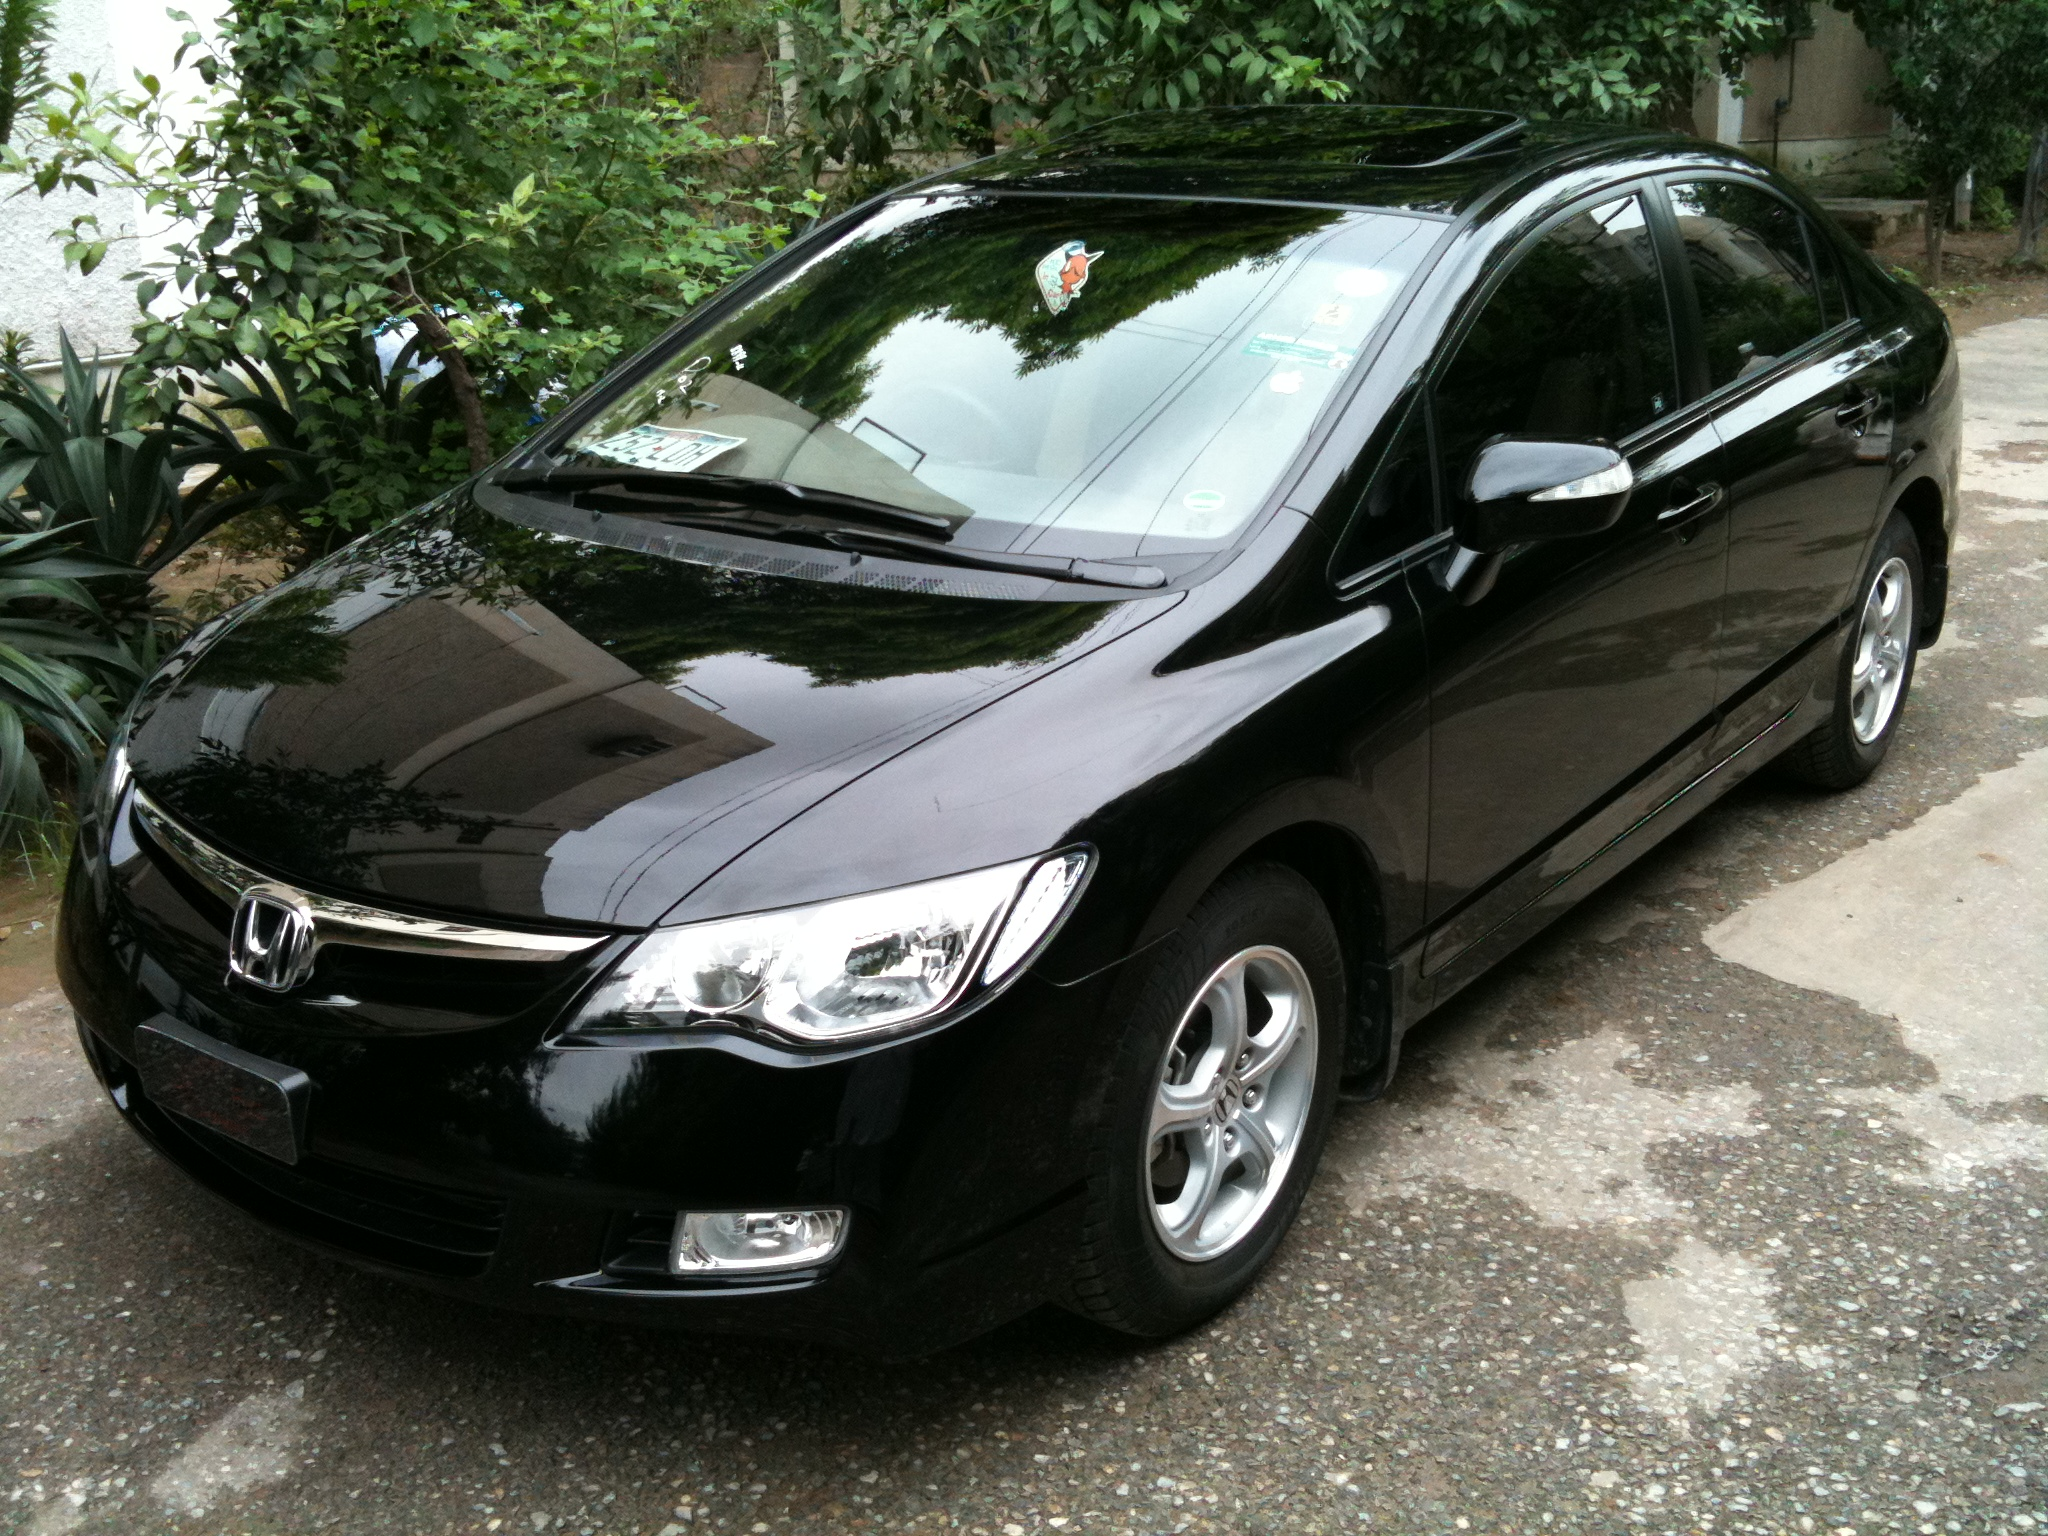 Honda Civic 2010 Of Foofafoofe Member Ride 16037 Pakwheels